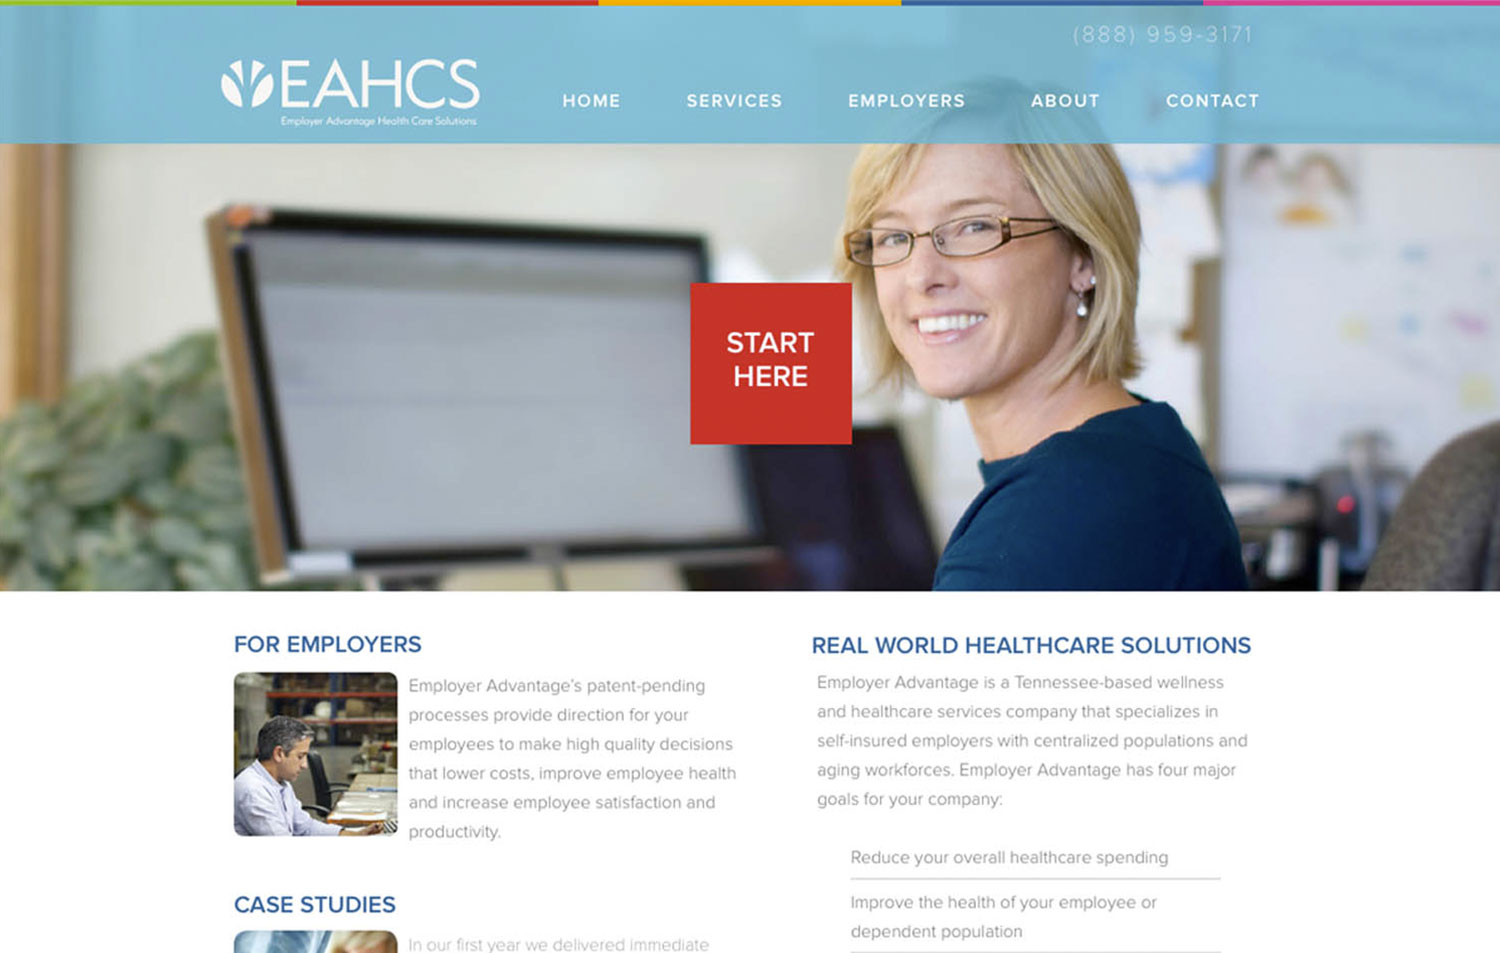 EAHCS Employer Advantage Health Care Solutions - Navigation Advertising - Healthcare - Web